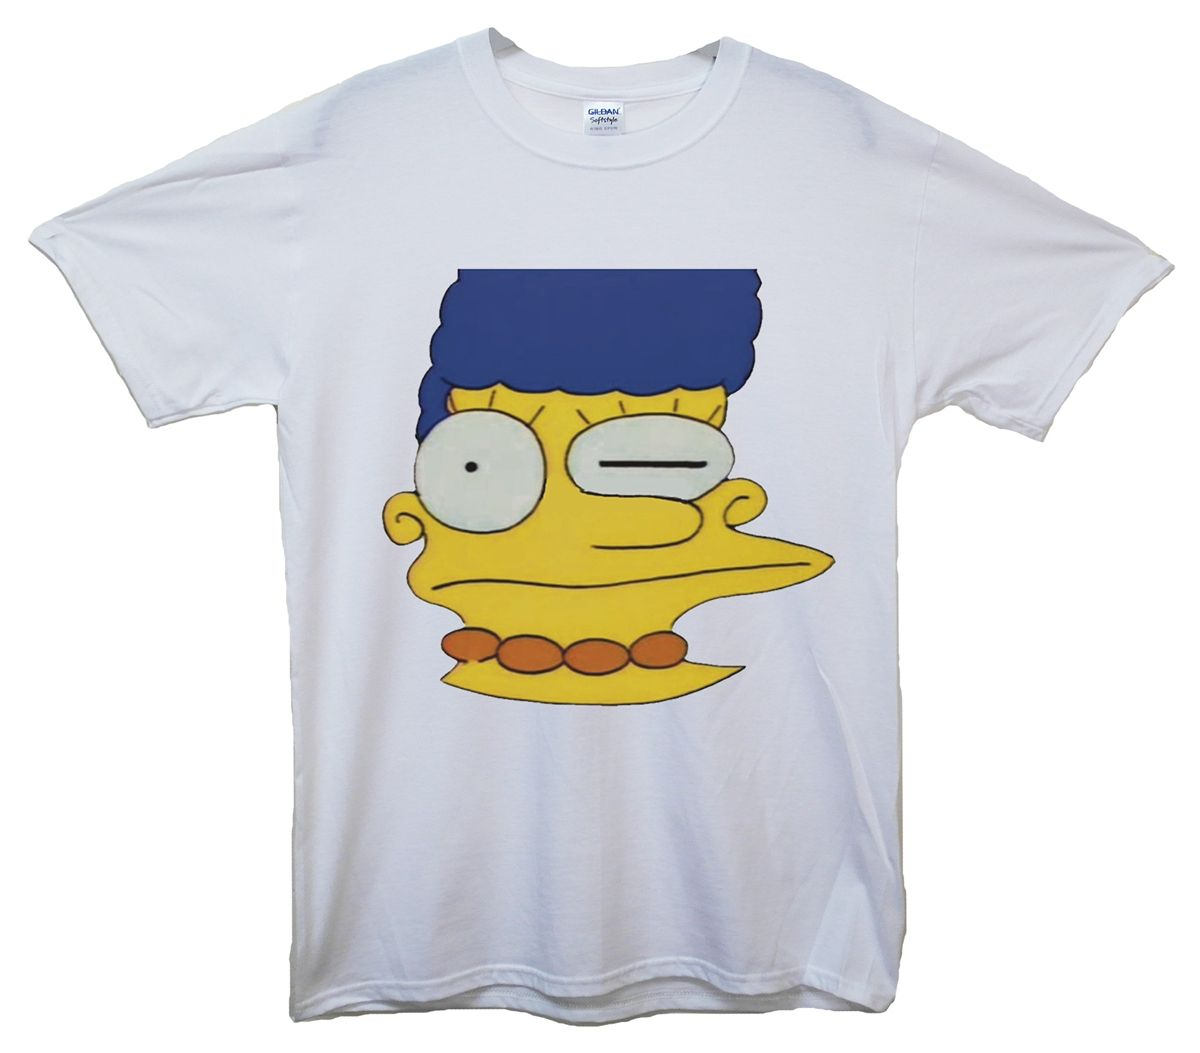 0836fb40e61 Misprinted Marge Simpson T-Shirt